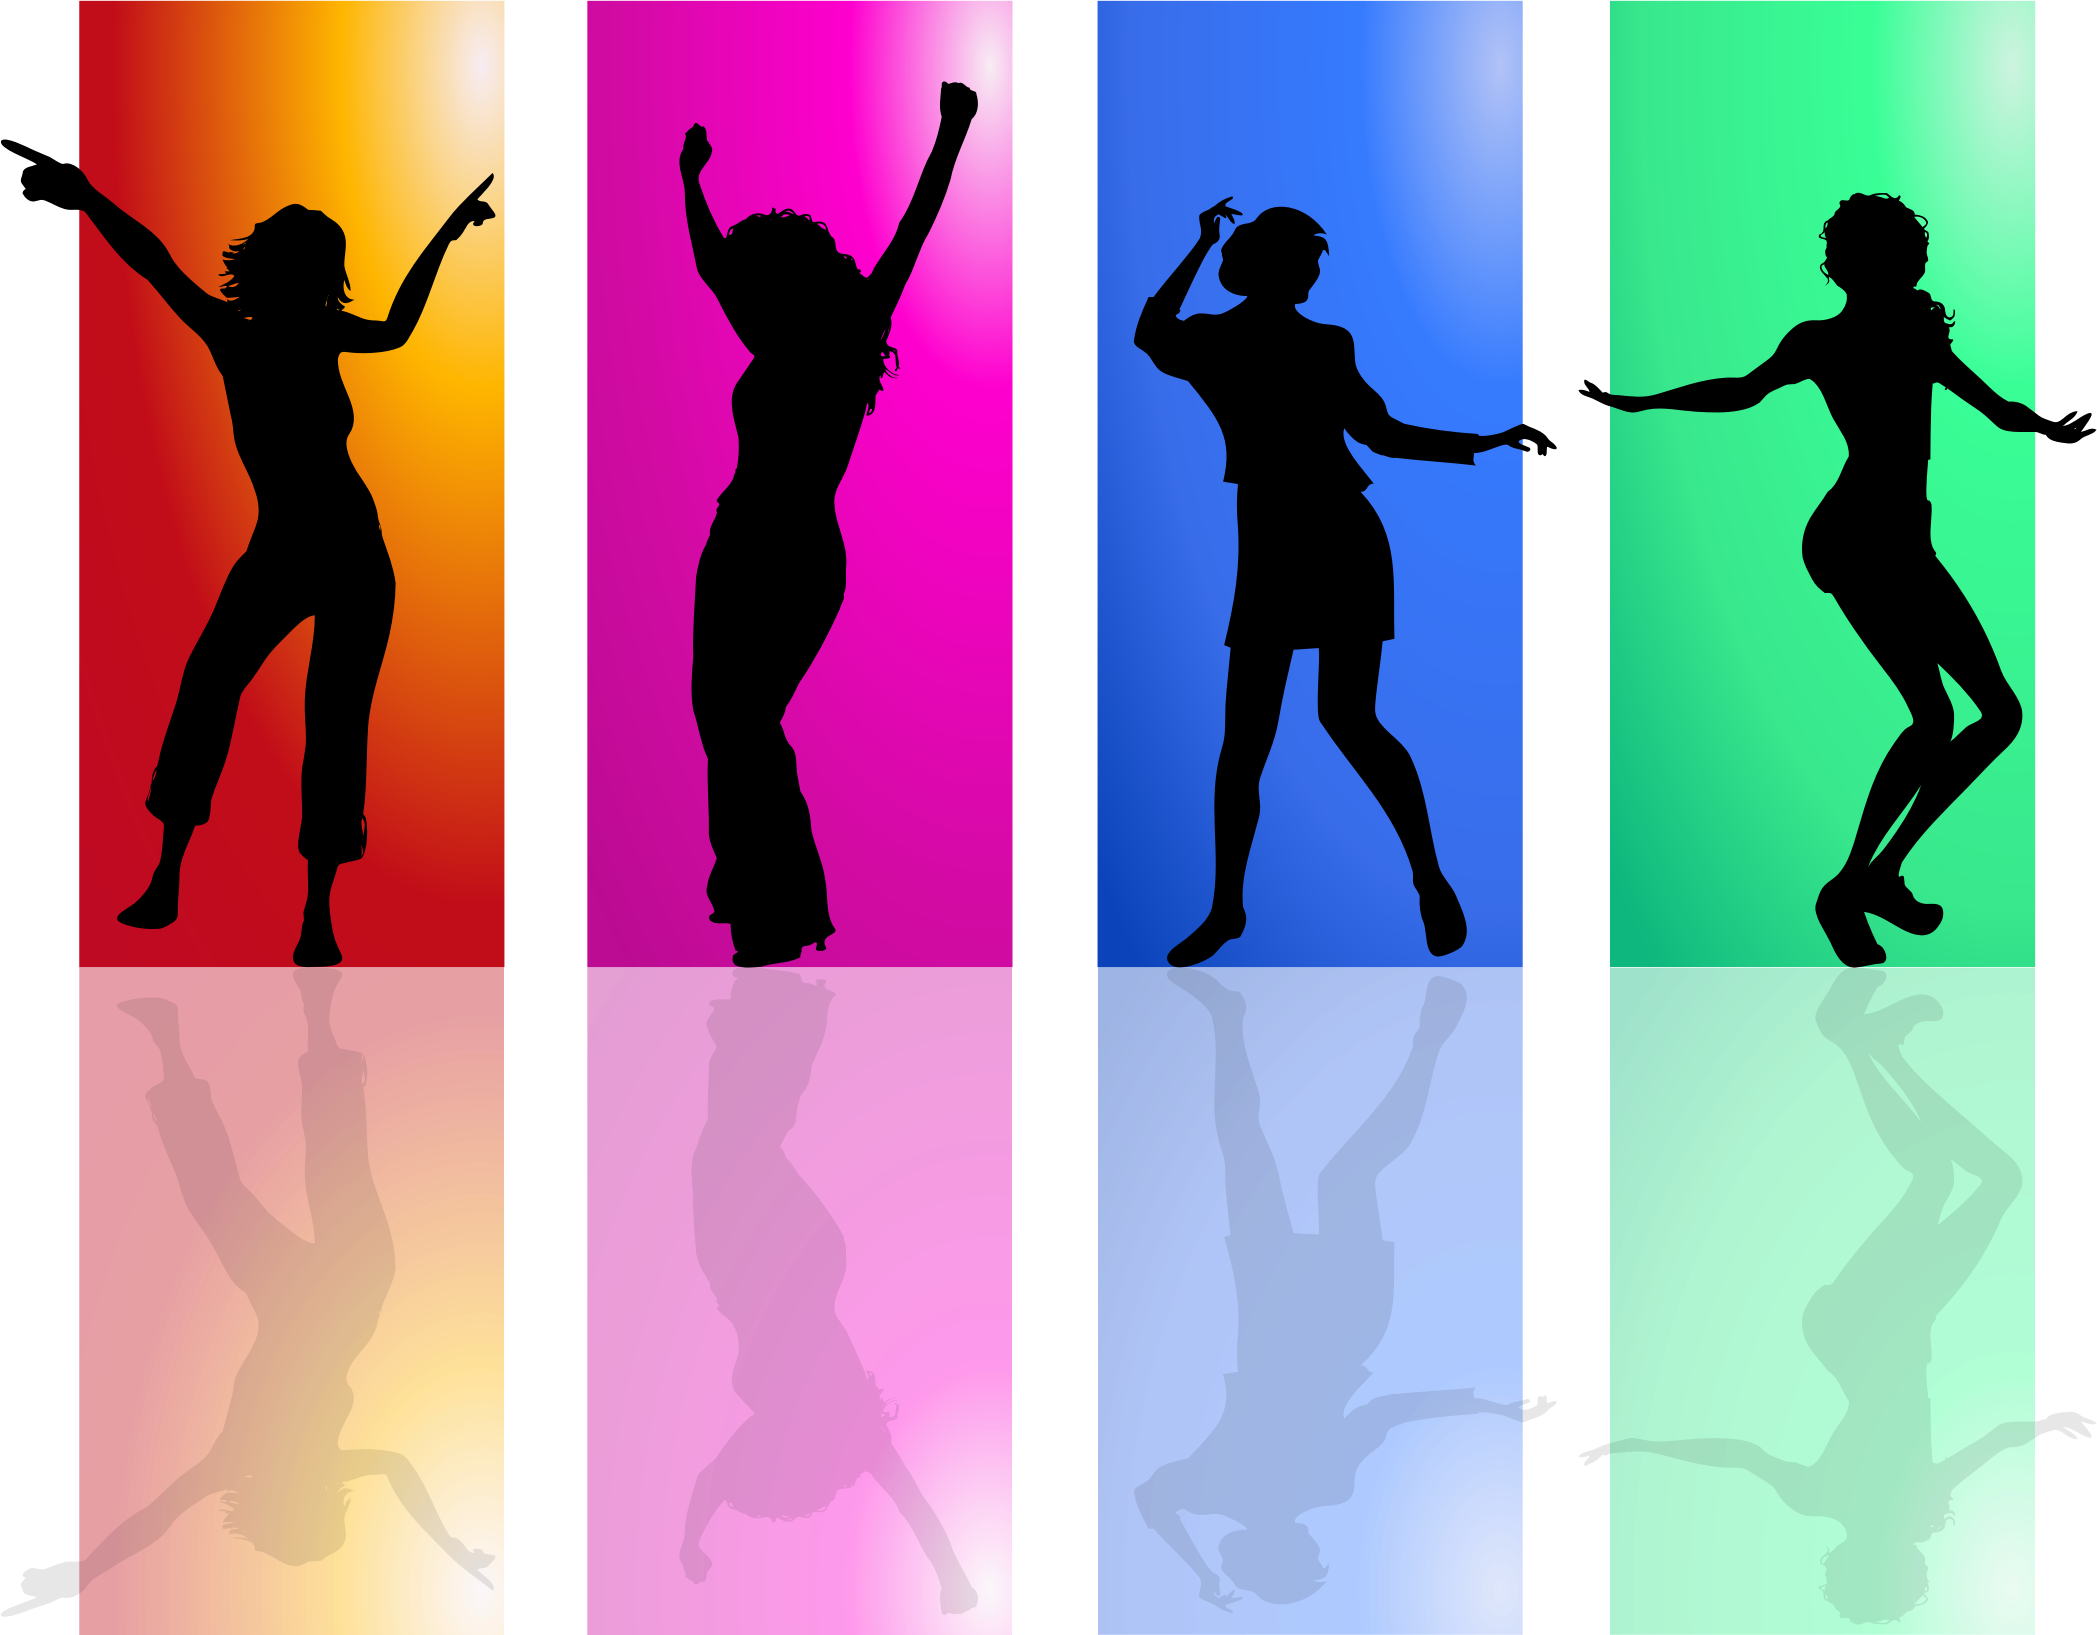 Silhouette dancing people png. Colorful women icons free